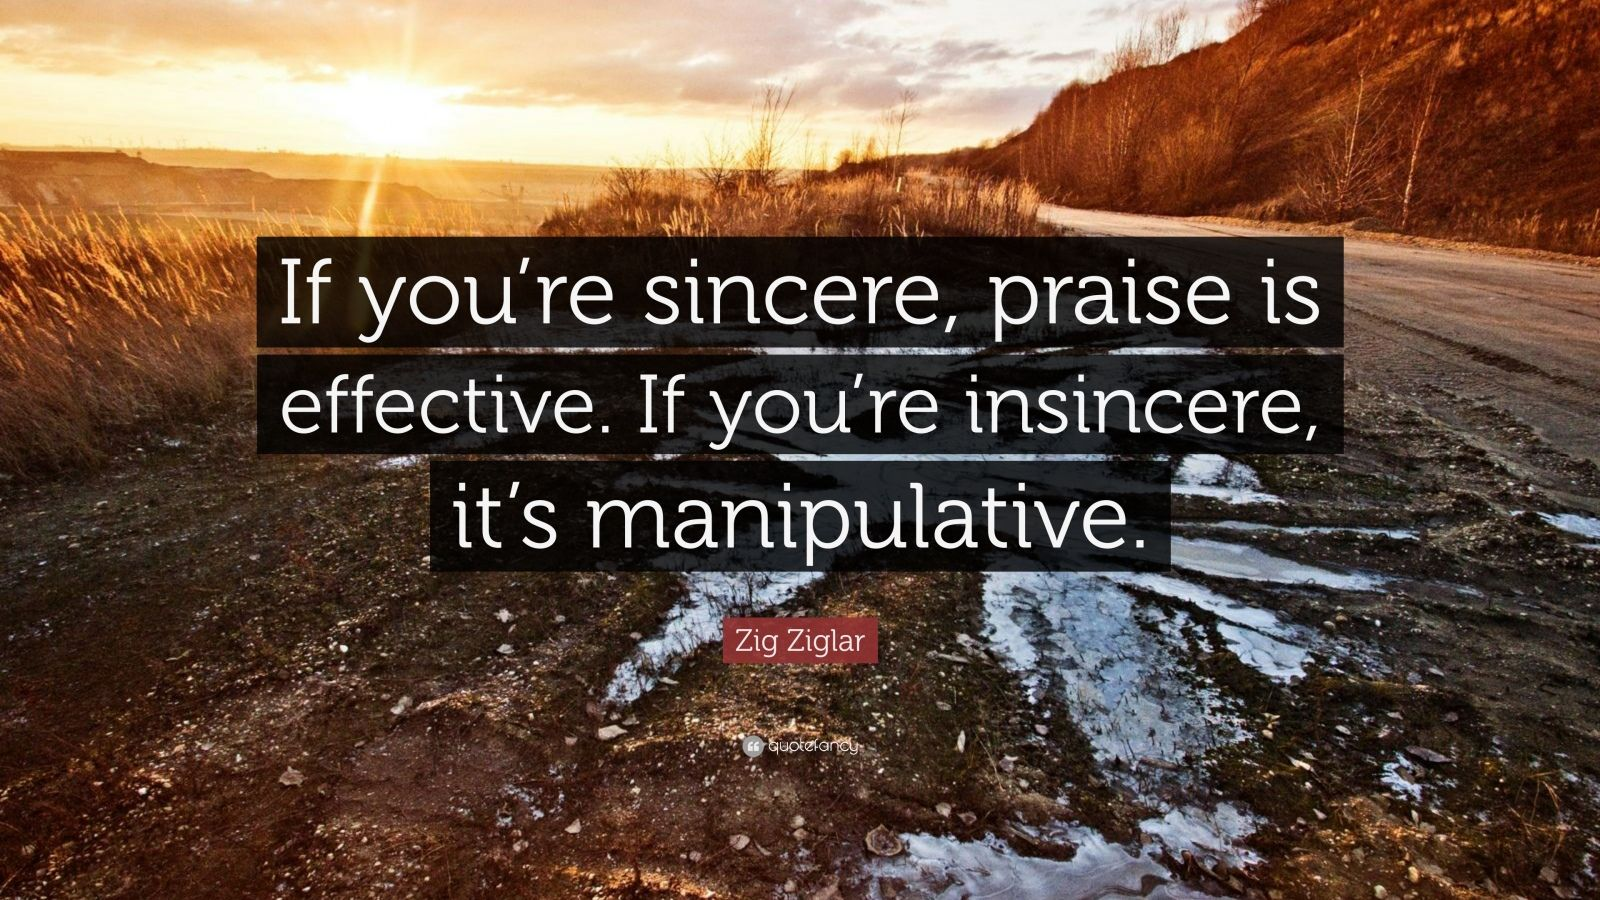 """Zig Ziglar Quote: """"If you're sincere, praise is effective. If you're insincere, it's manipulative."""""""